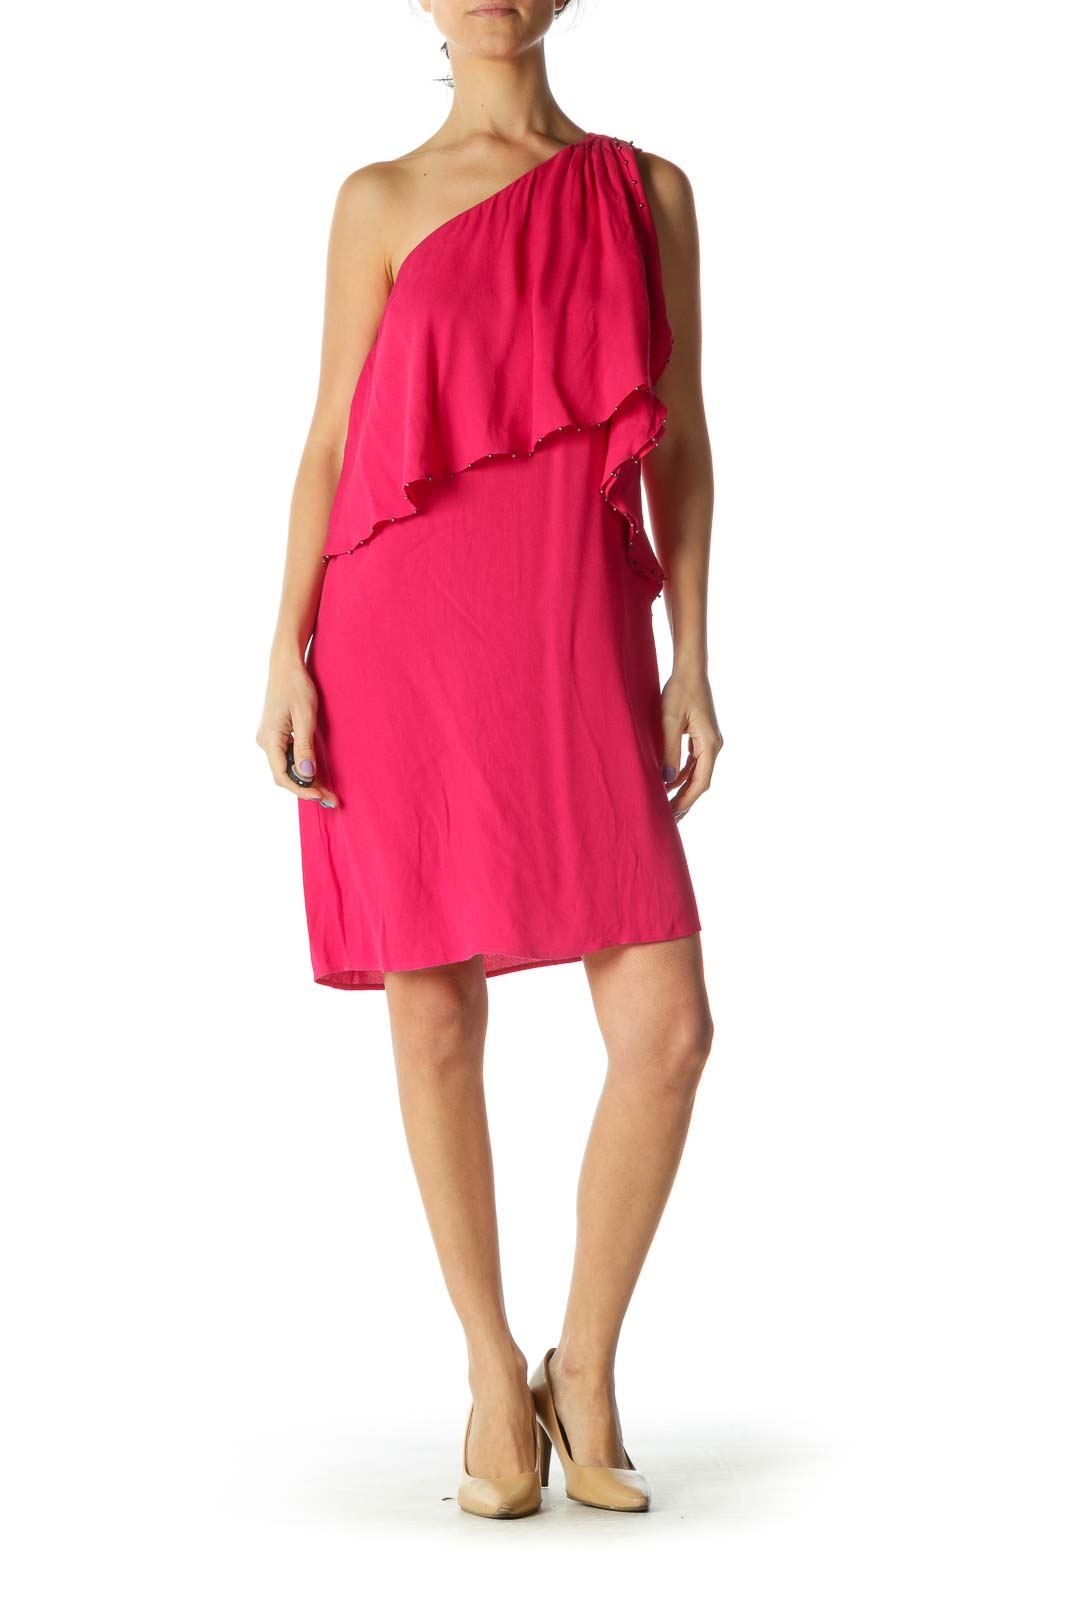 Pink One Shoulder Dress